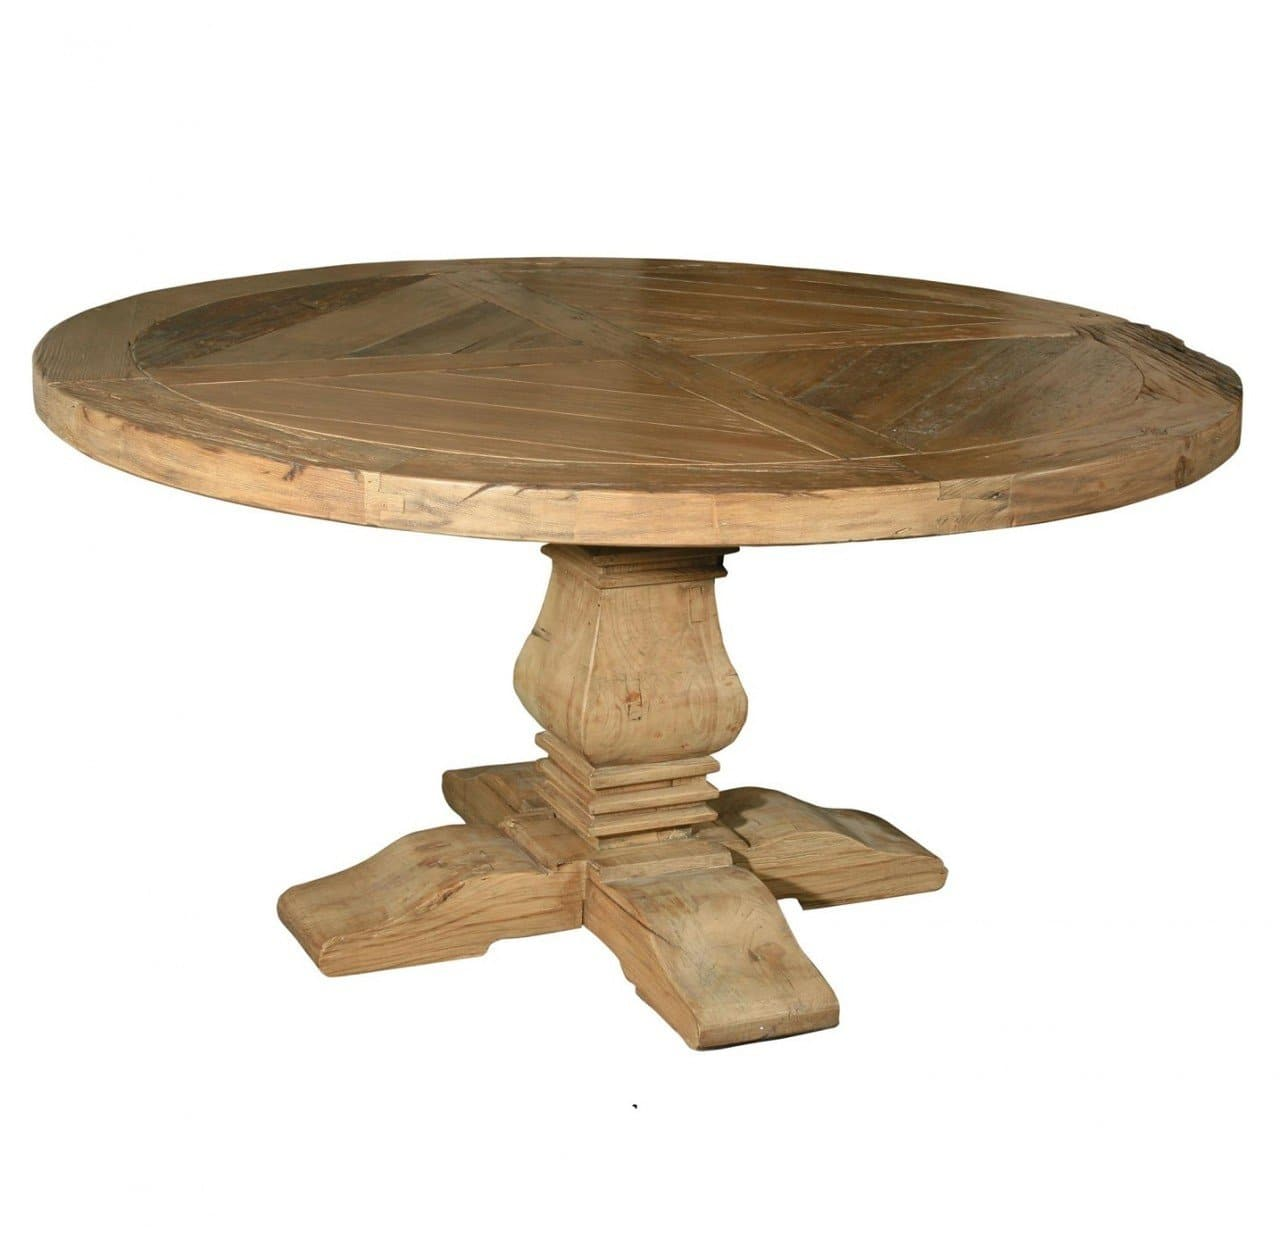 Best Old Round Pedestal Dining Table